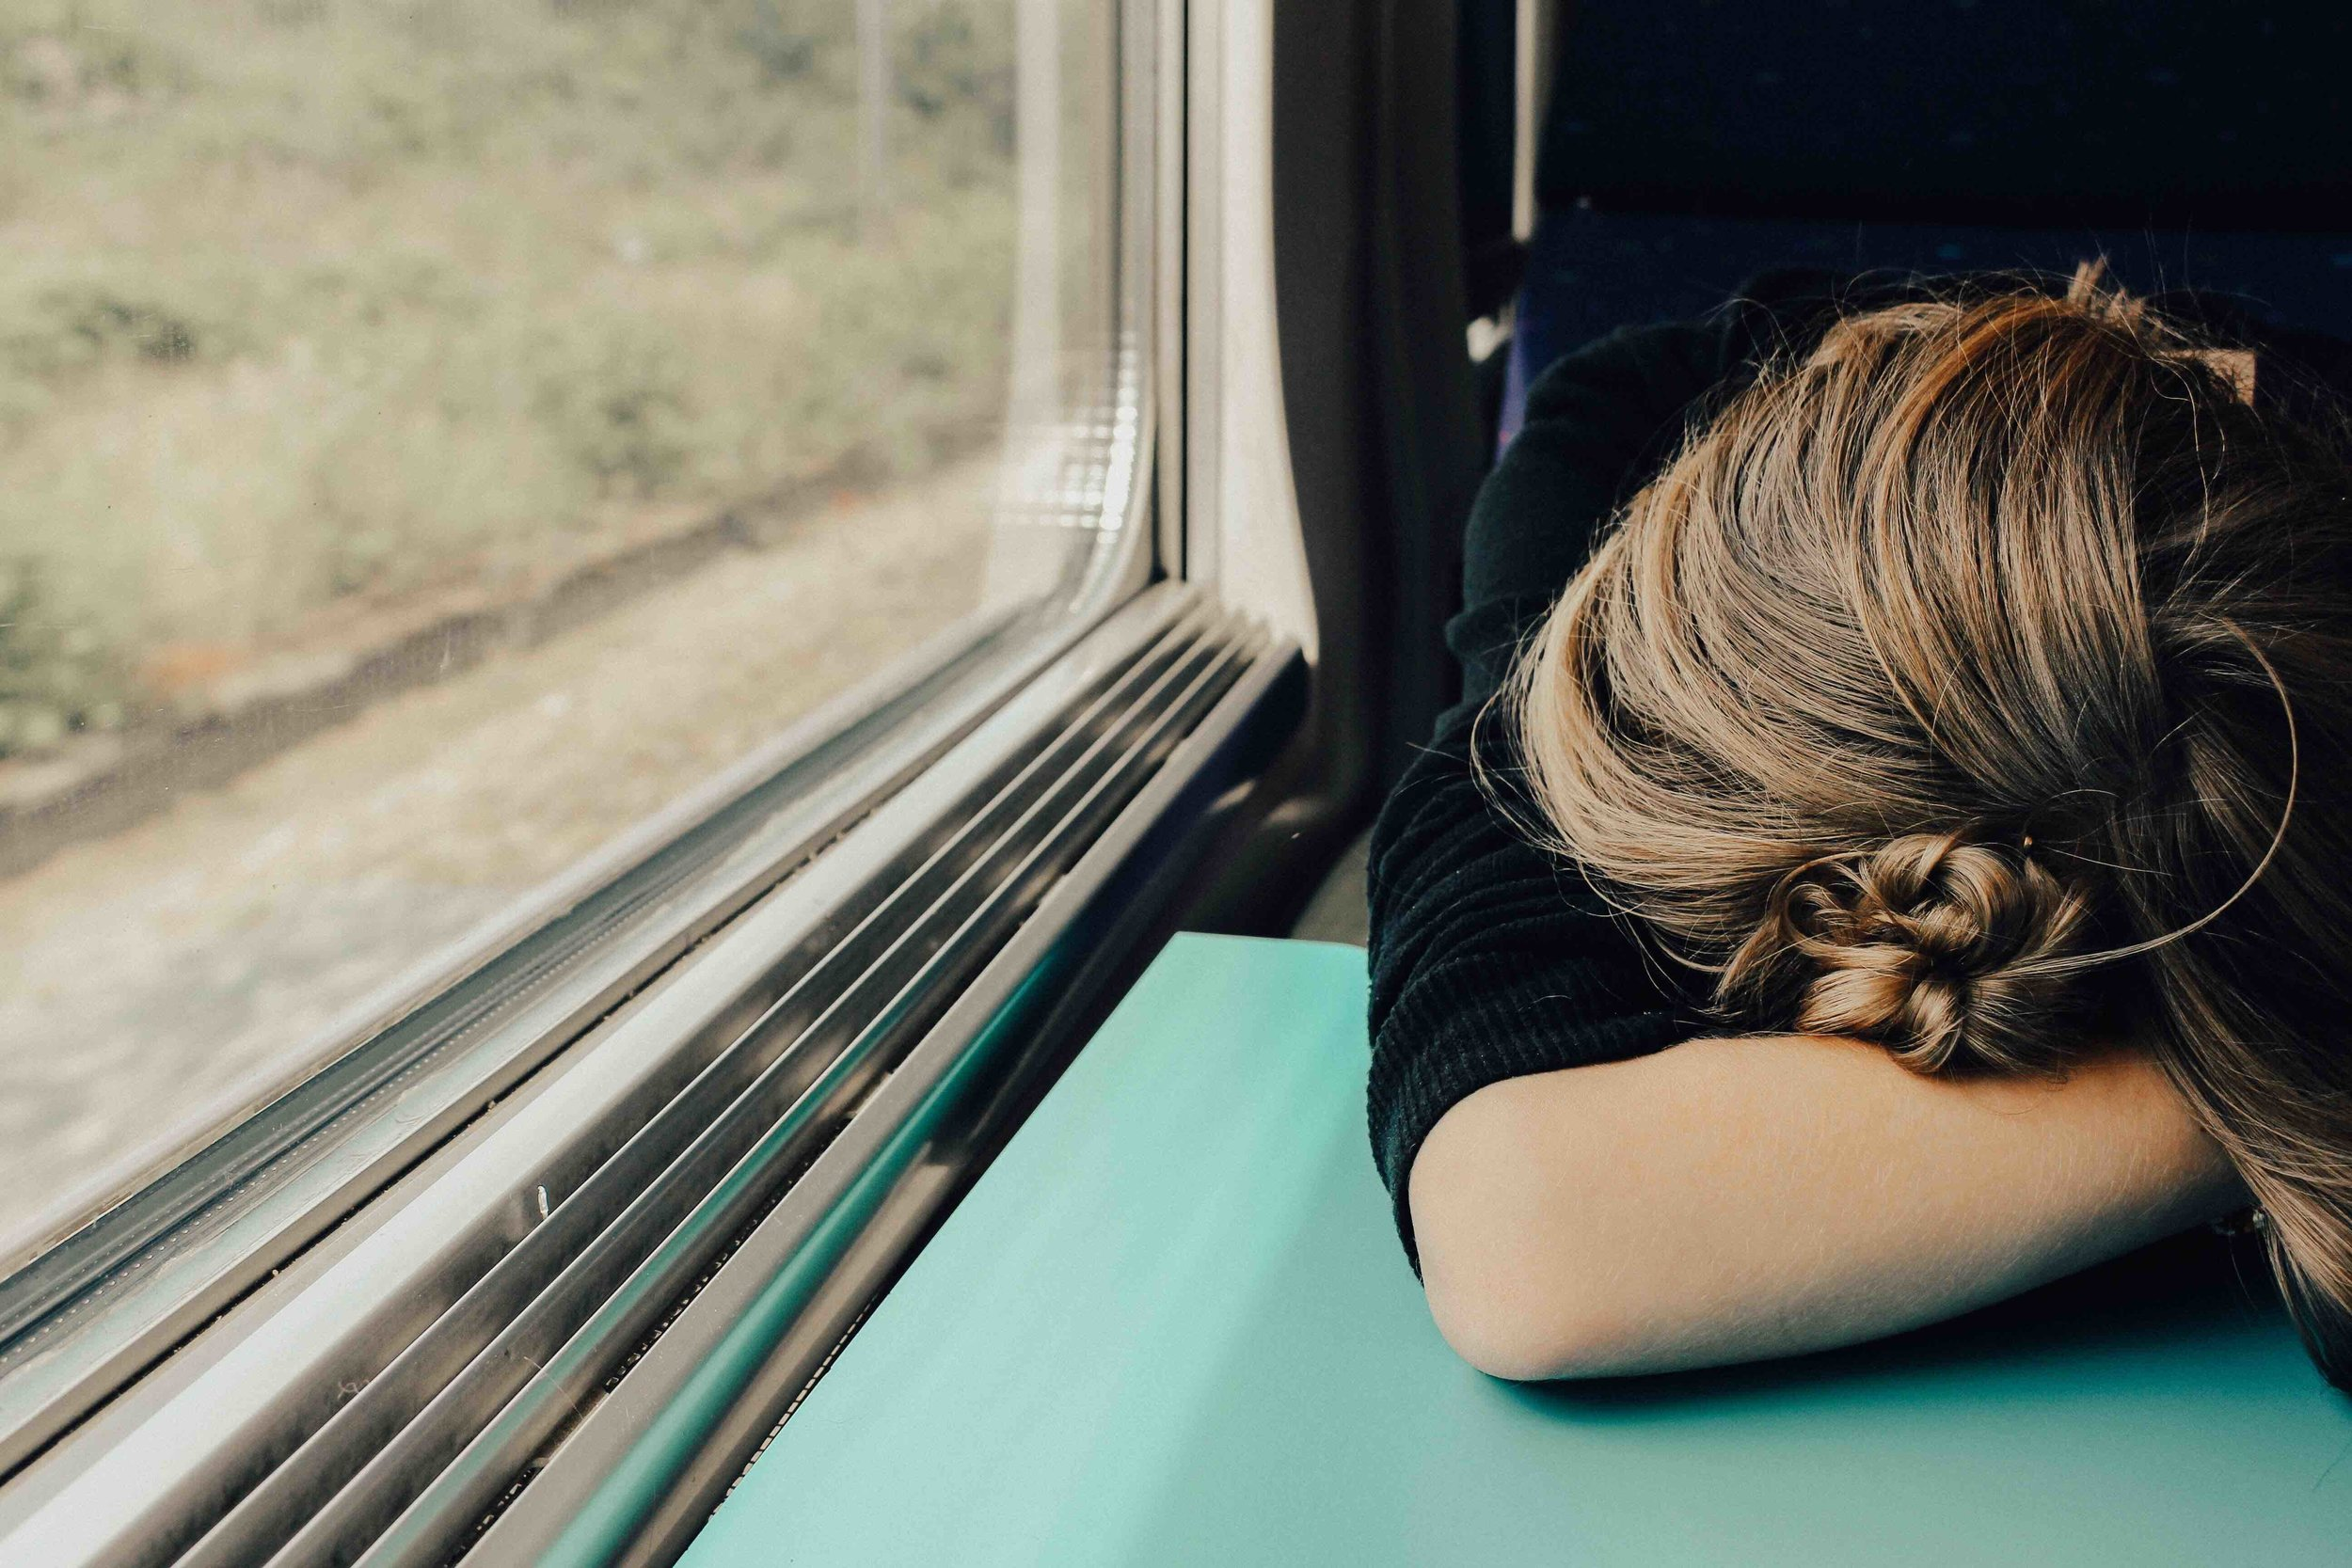 exhausted on commute train